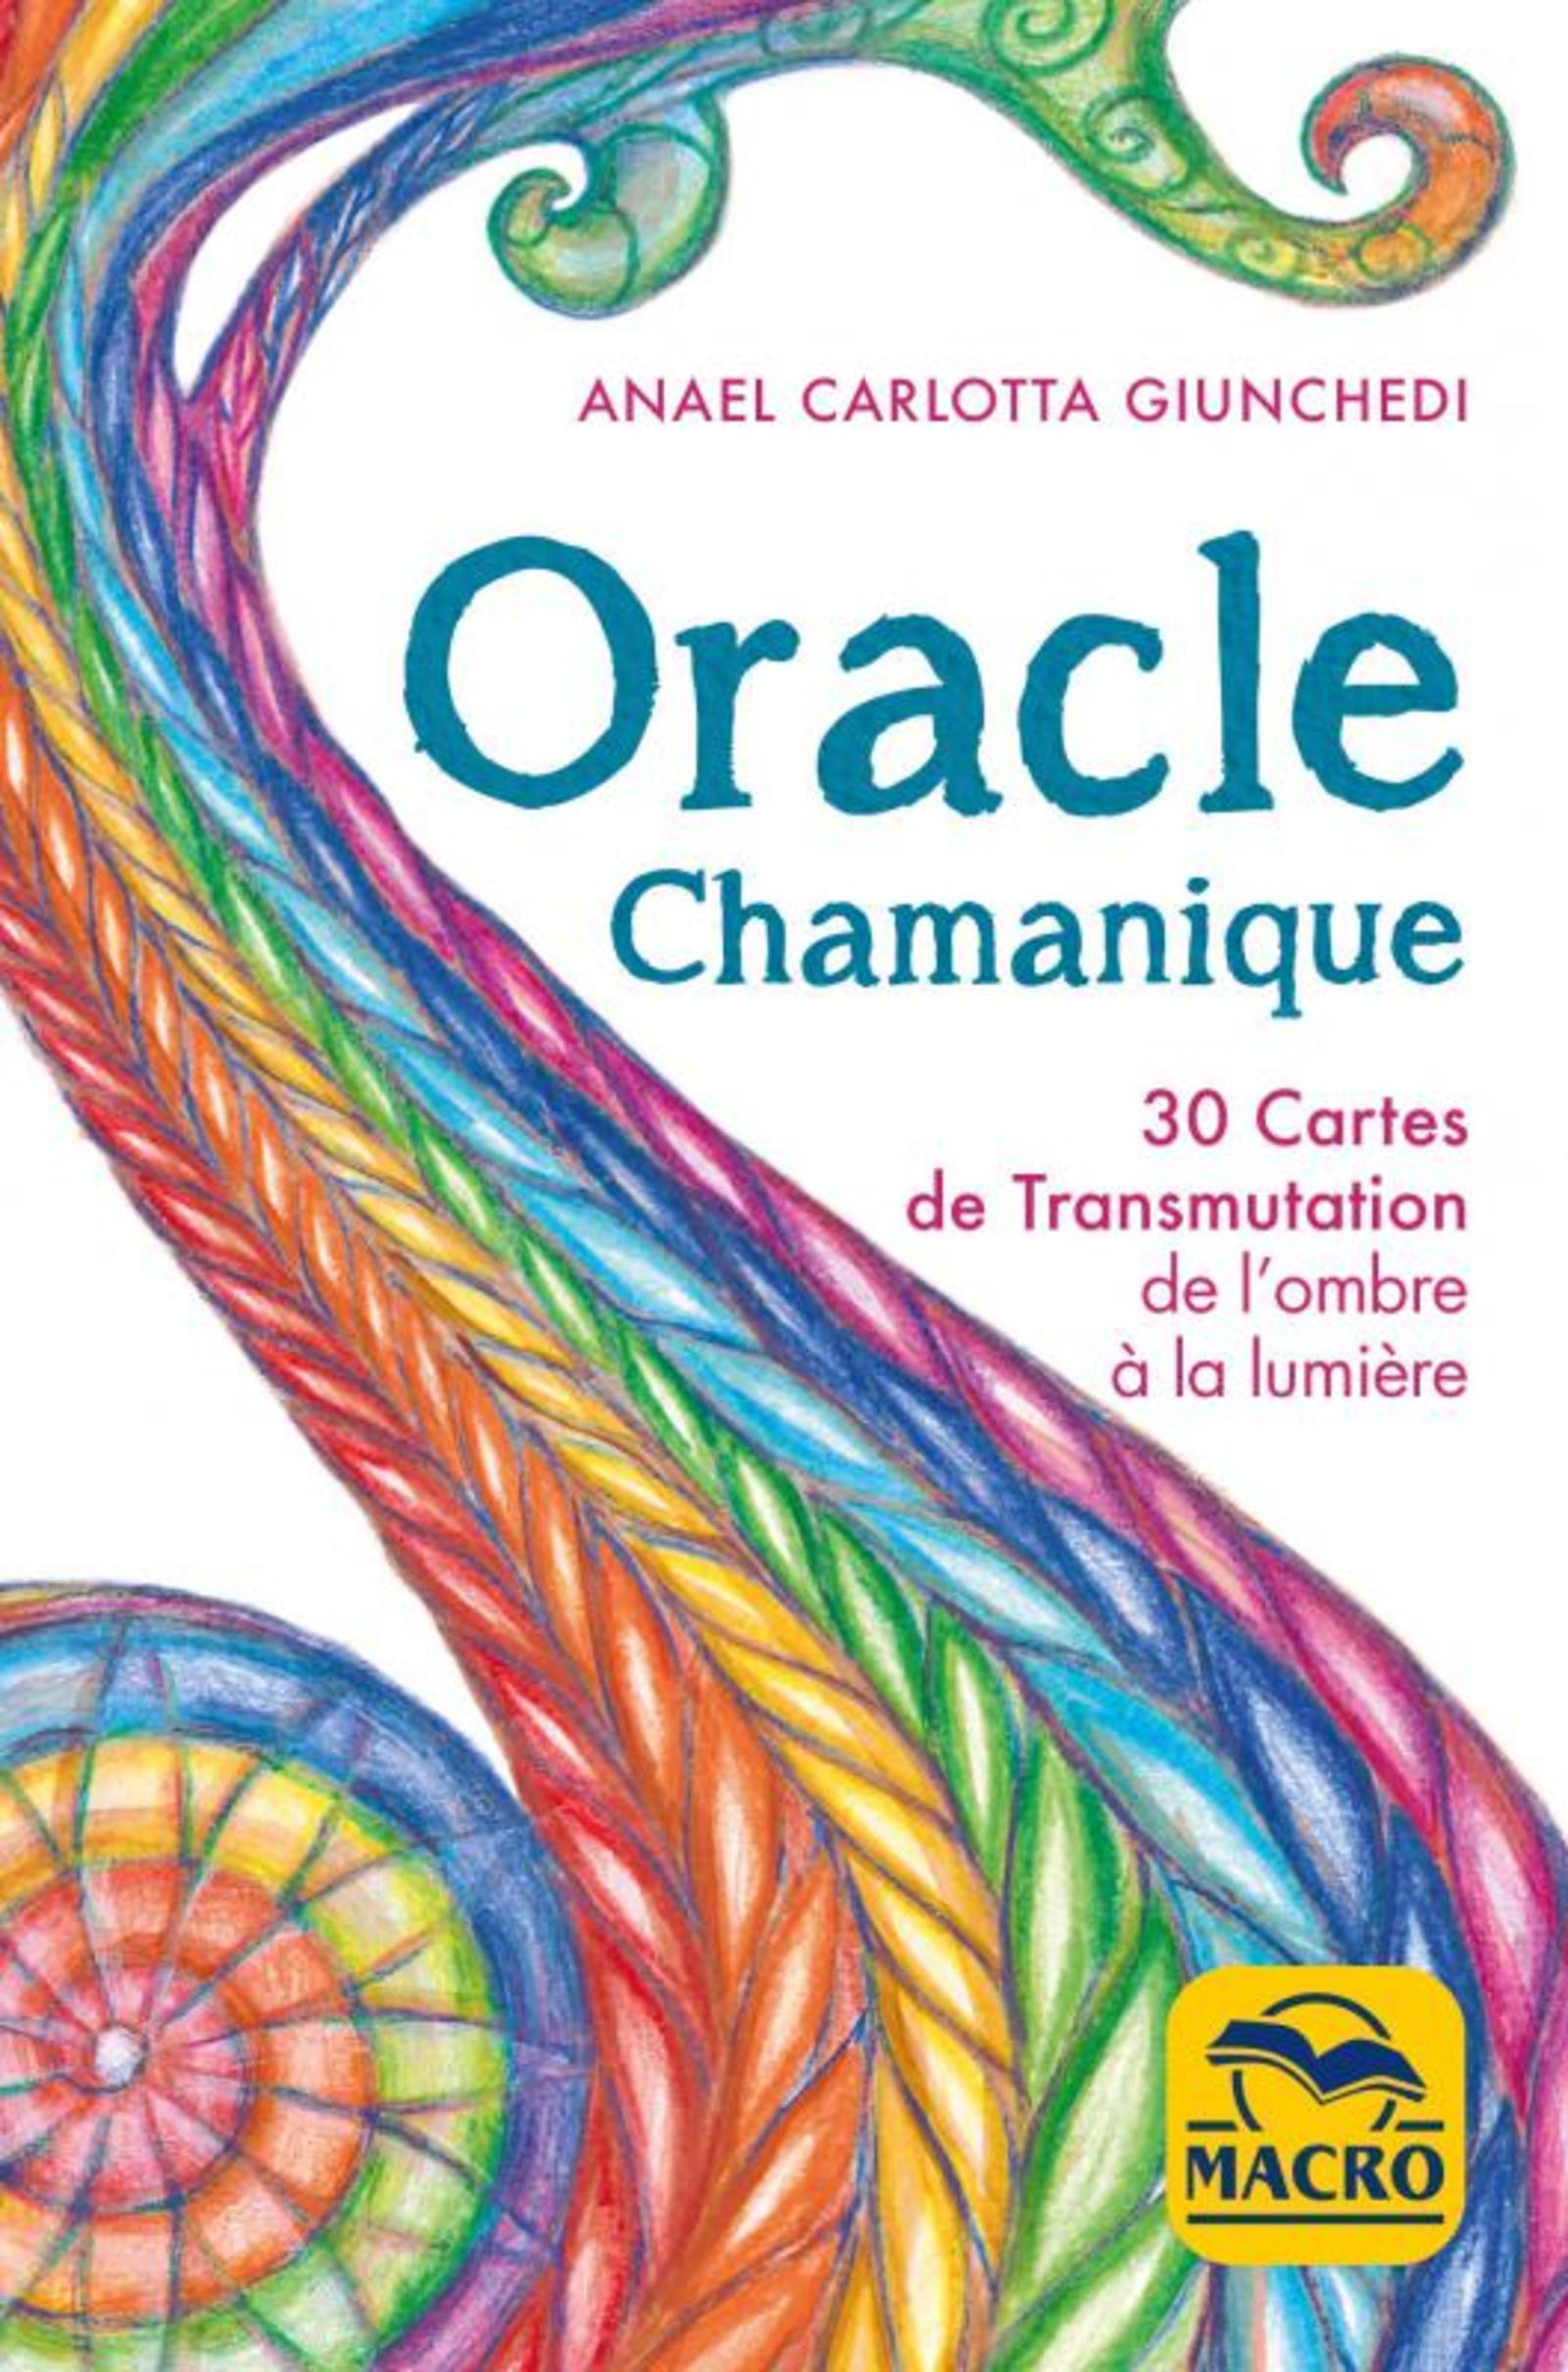 COFFRET ORACLE CHAMANIQUE - 30 CARTES DE TRANSMUTATION DE L'OMBRE A LA LUMIERE ACCOMPAGNEES D'UN LIV